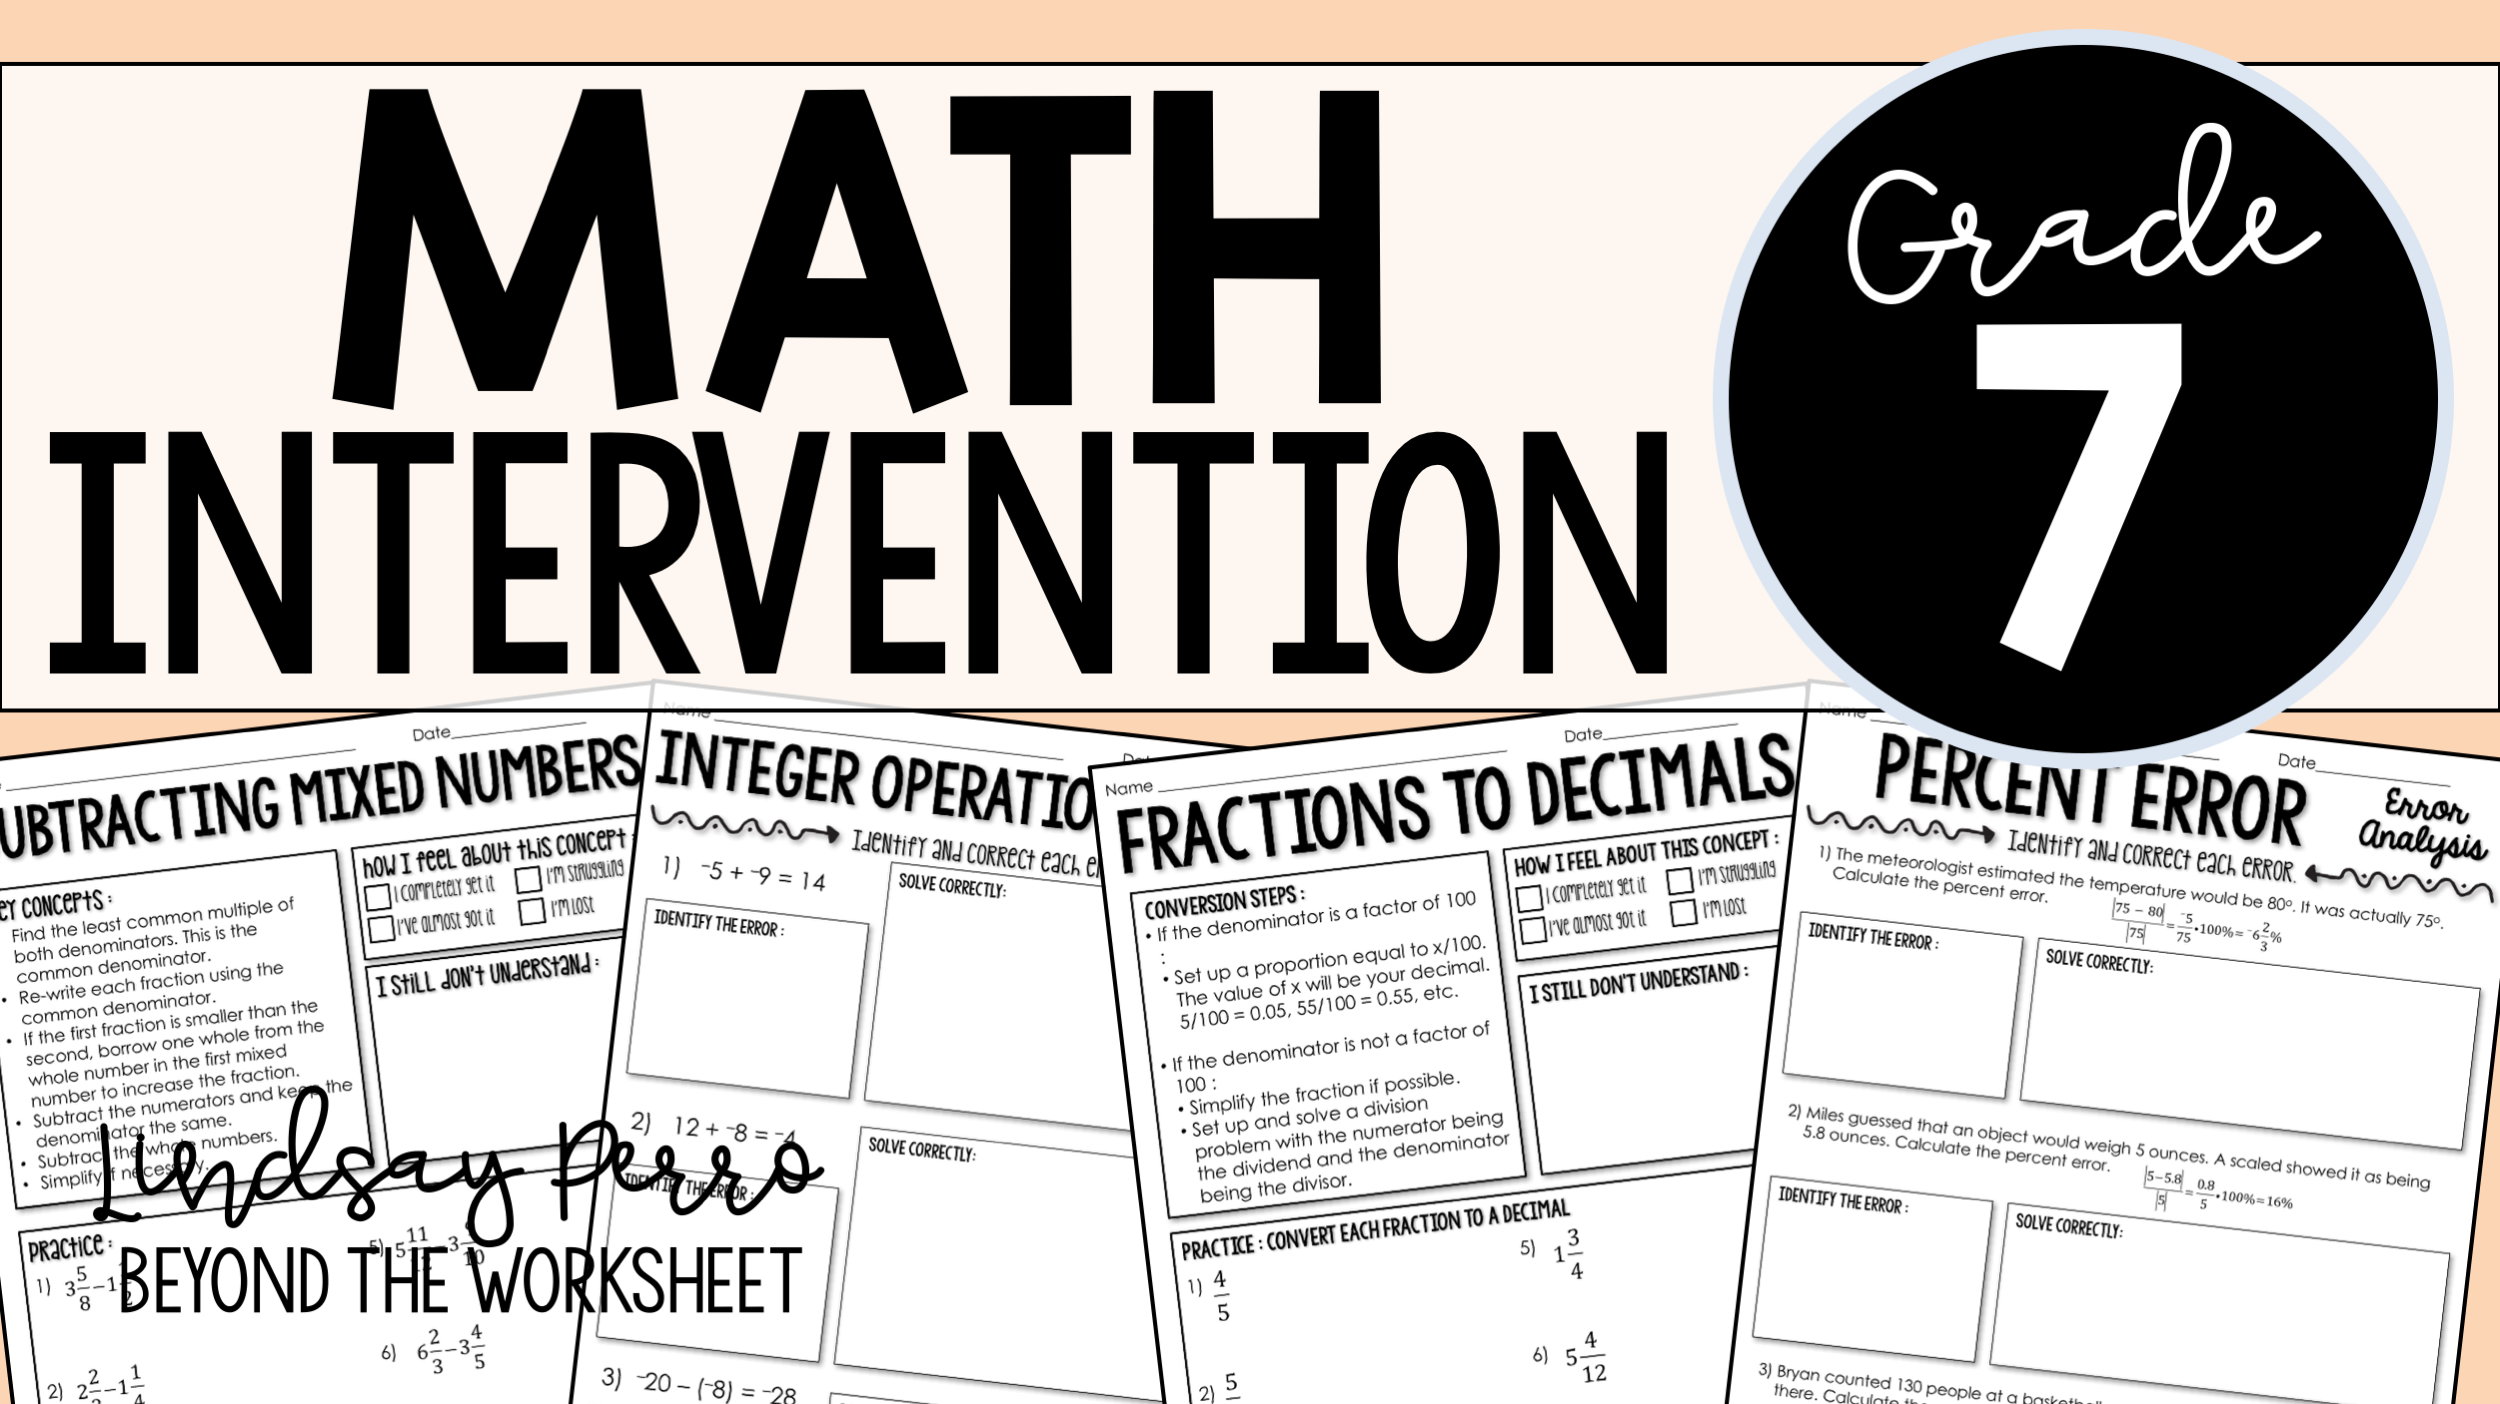 Everything You Need For Successful Math Intervention In 7th Grade Math Intervention 7th Grade Math Math [ 1404 x 2500 Pixel ]